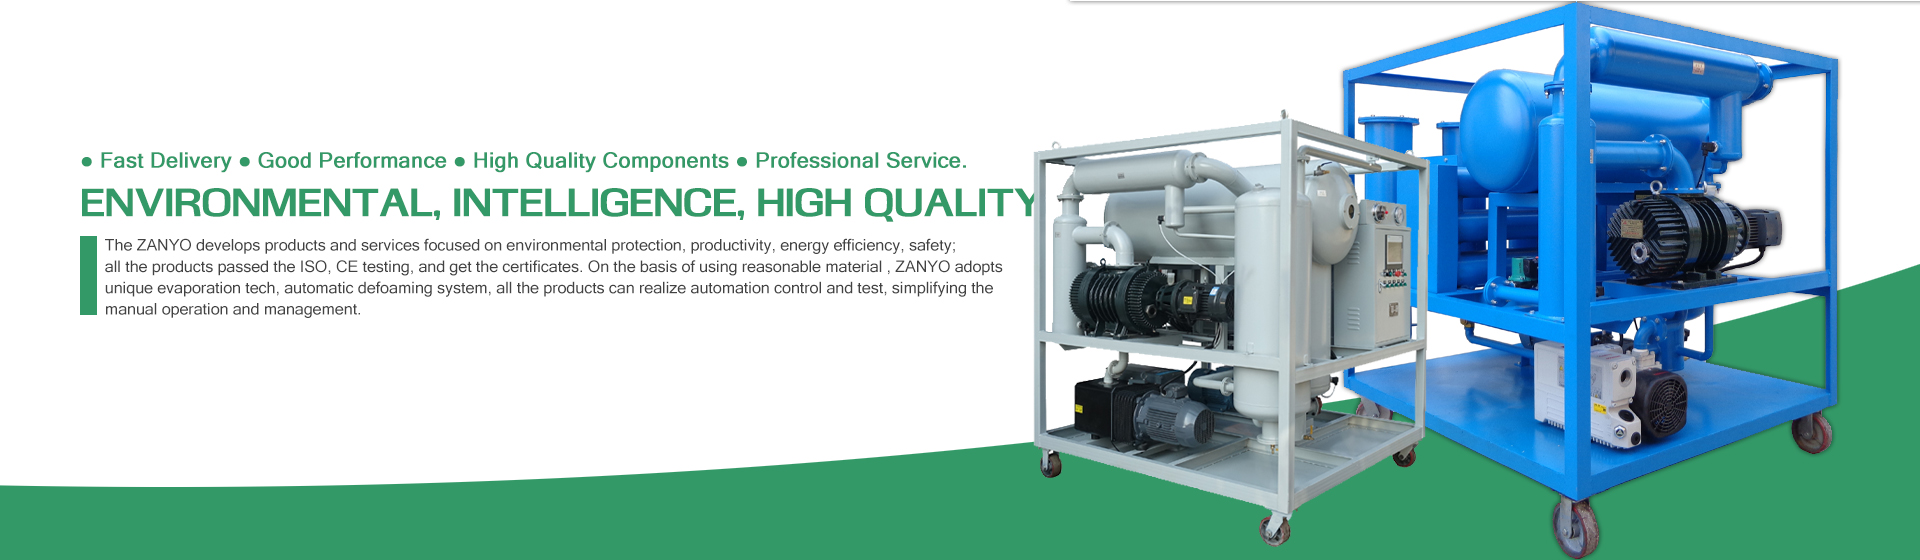 ZANYO Transformer Oil Purifier Banner 01